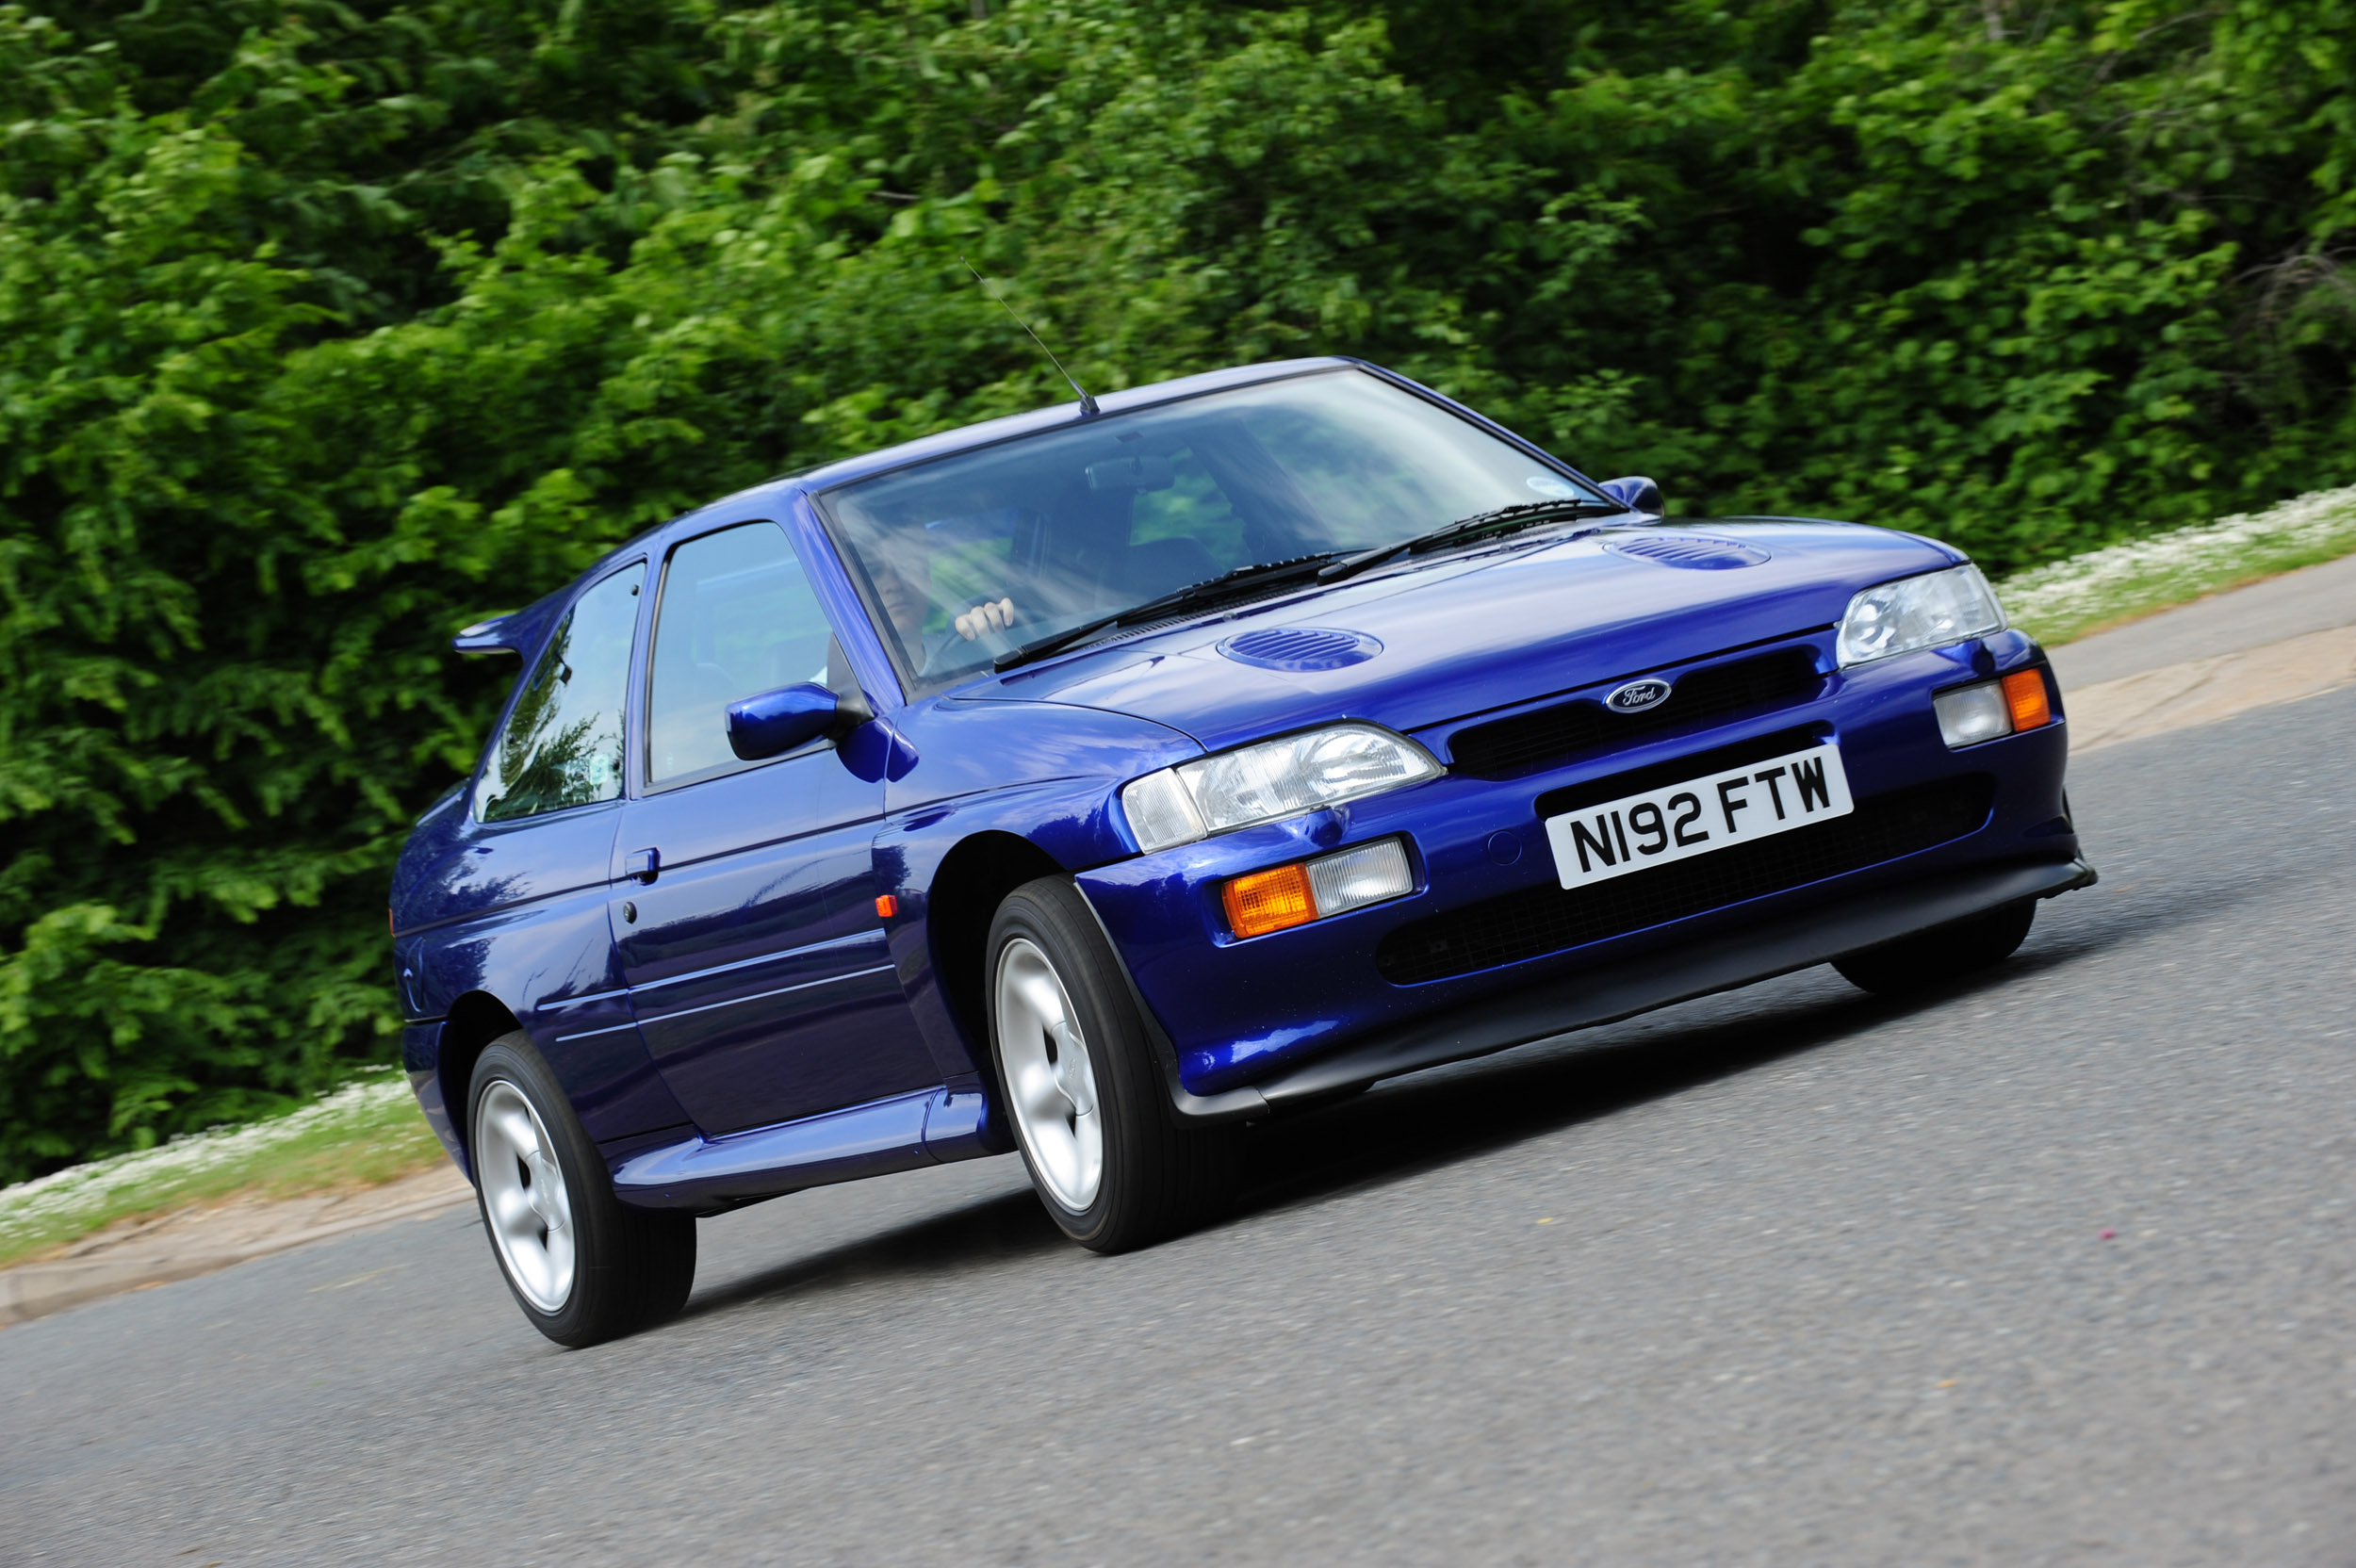 Ford Escort RS Cosworth buying guide - Ford Escort RS